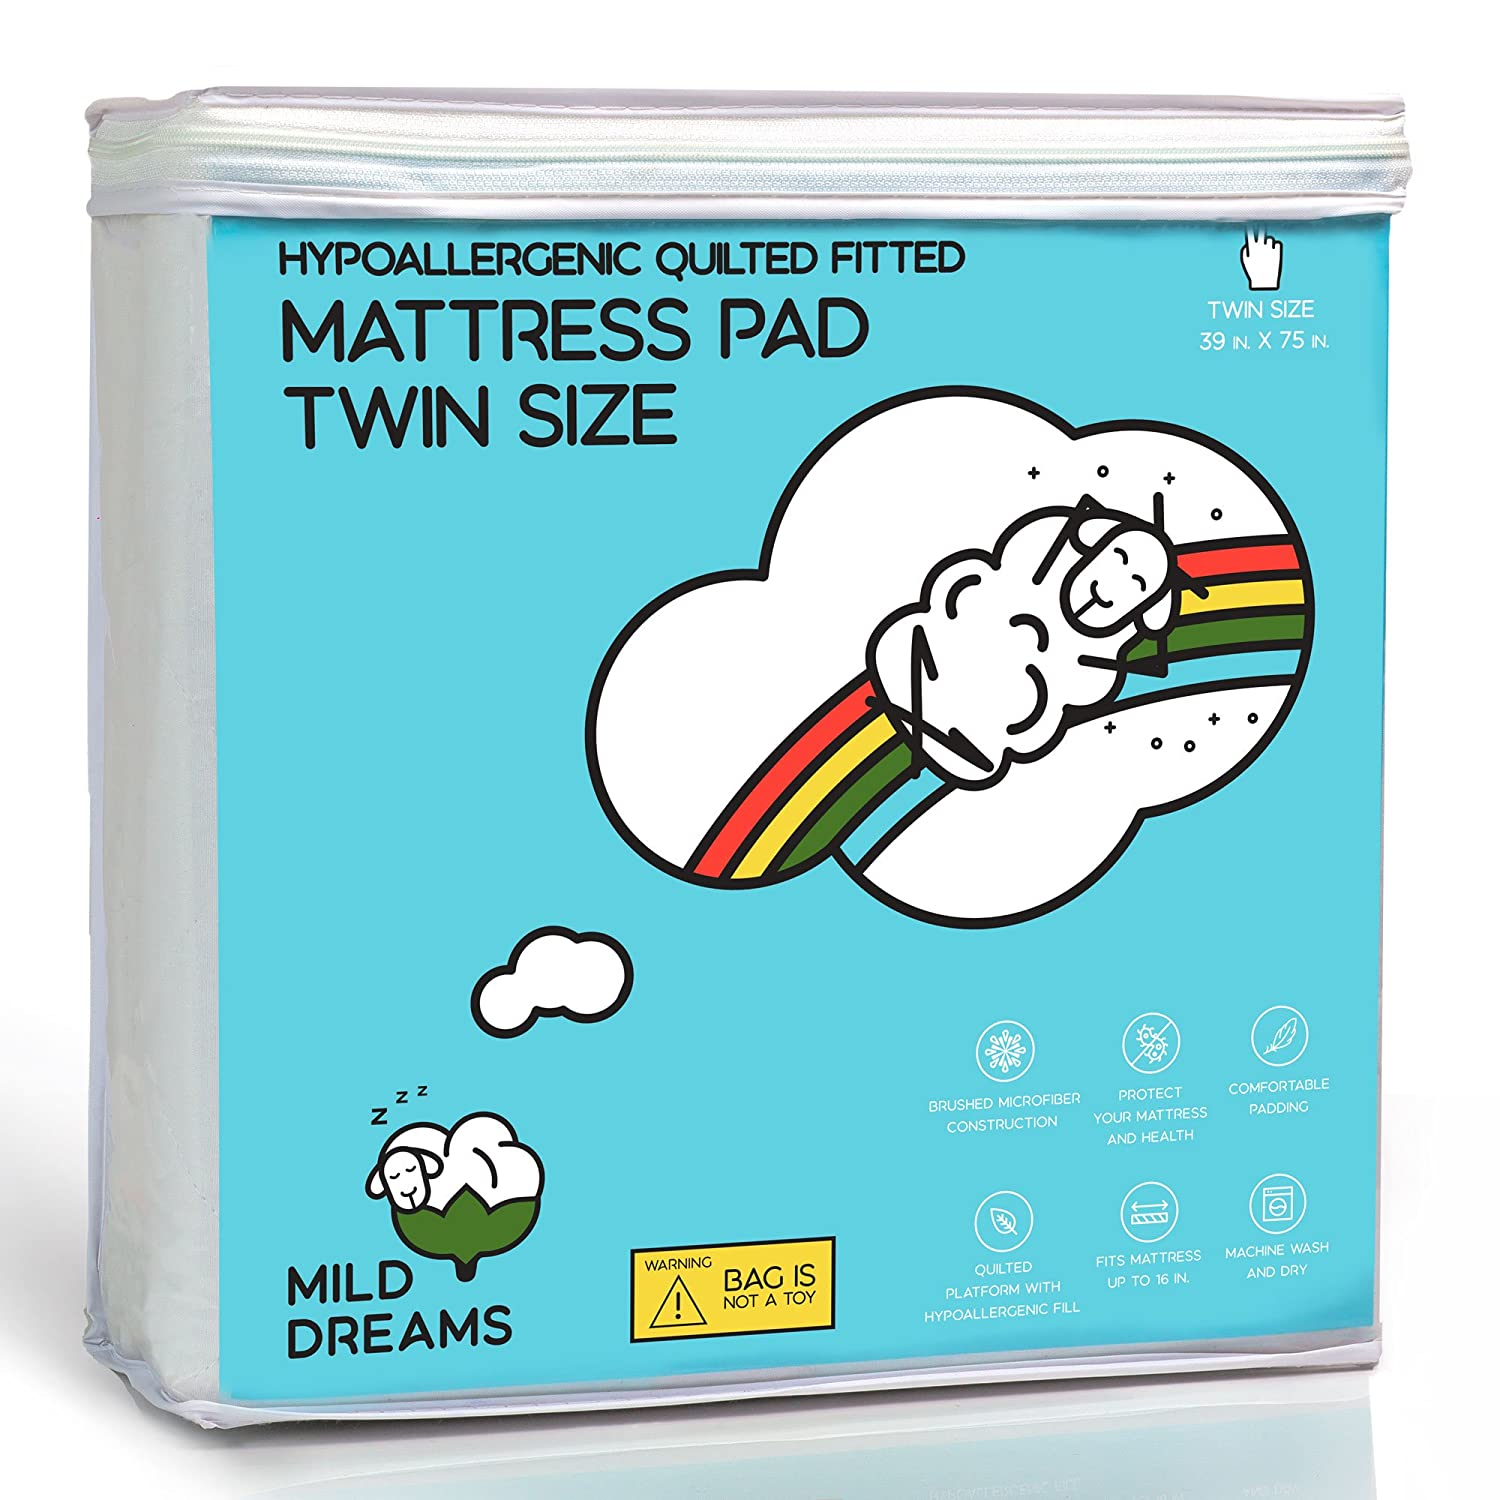 39x75 inches + Stretches to 16 Deep - Quilted Mattress Cover Milddreams Twin Mattress Pad Protector Topper Cover Twin Size Bed Pad